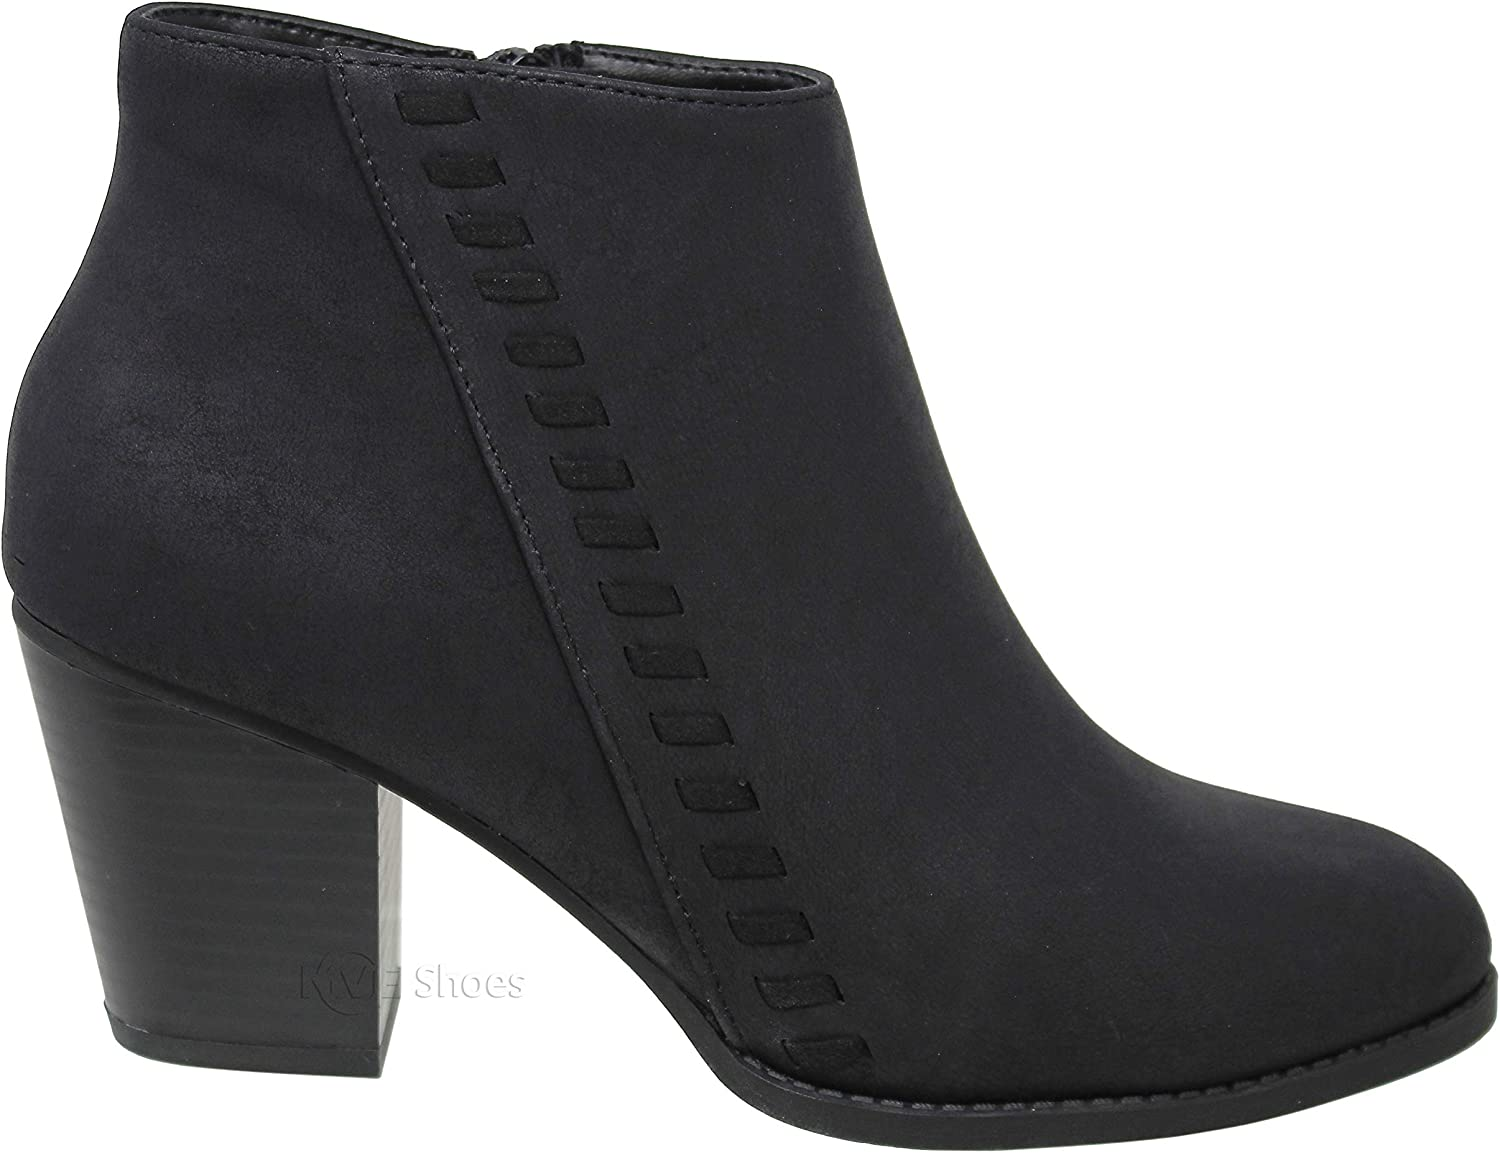 MVE Shoes Womens Bootie with Heel with Laces and Side Zipper